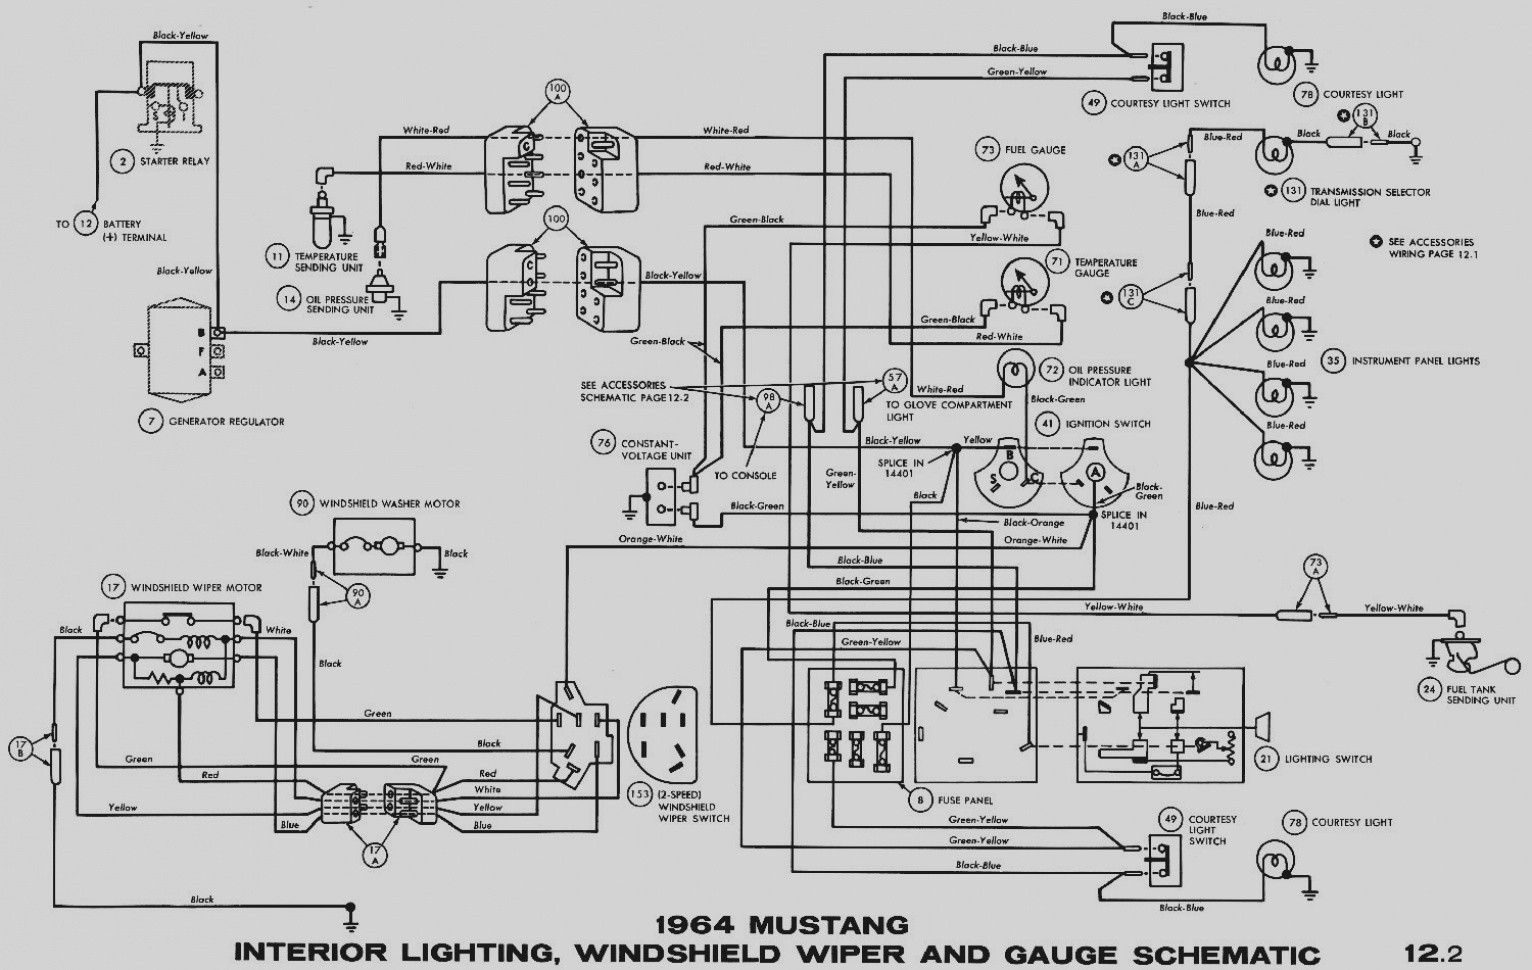 1971 Mustang Wiring Blueprint Light - Trusted Wiring Diagrams •